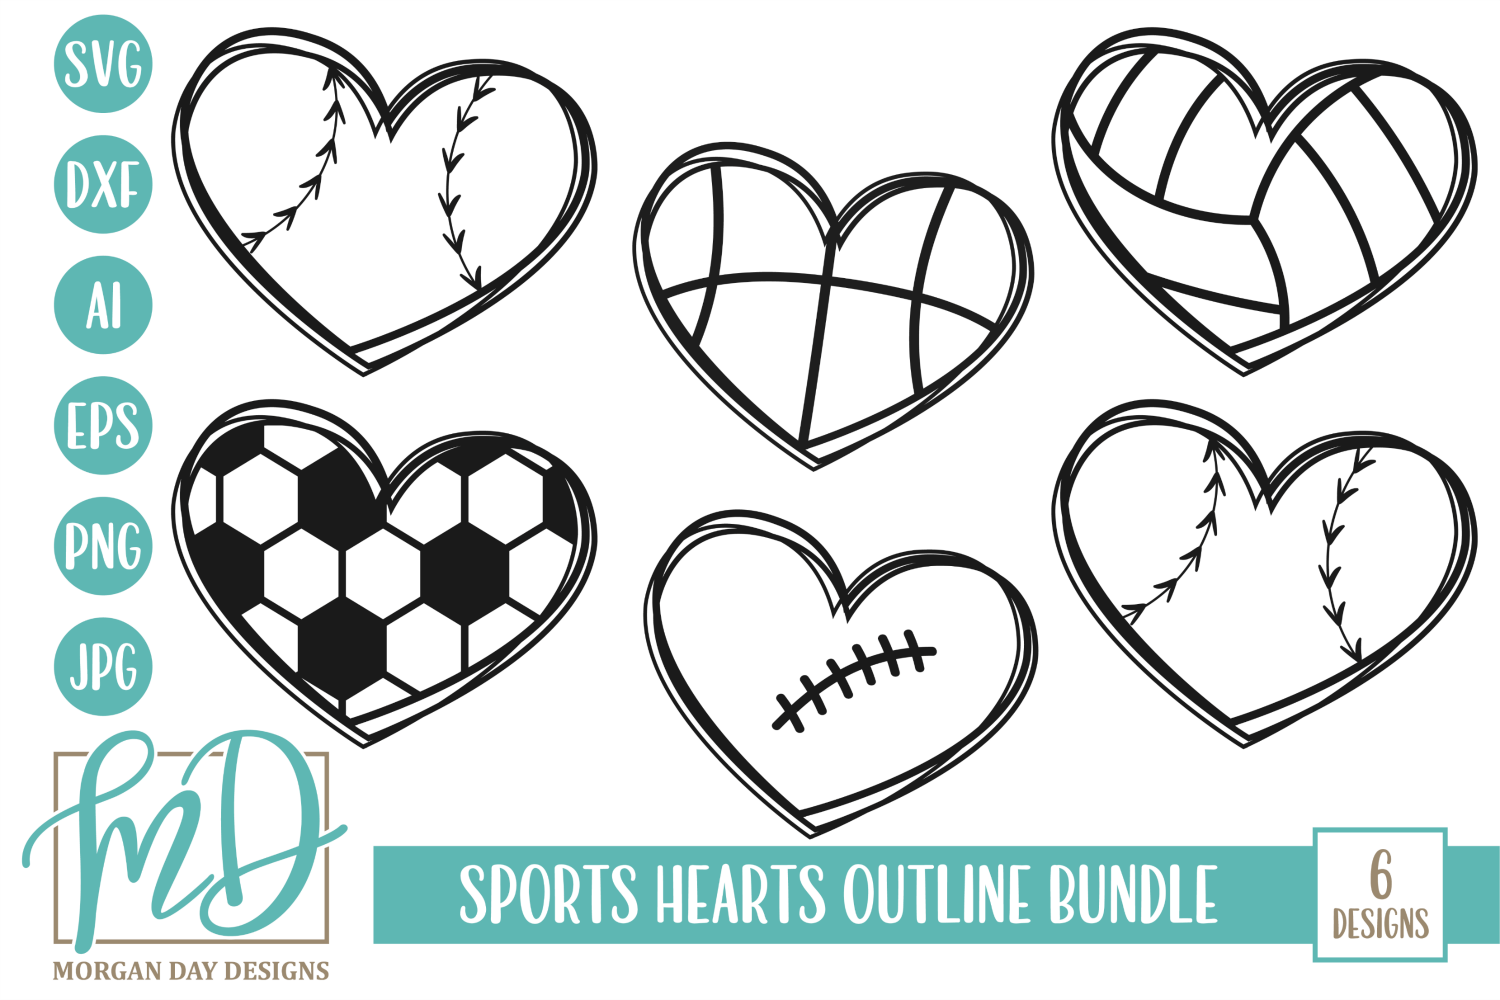 Sports Hearts Outline Svg Bundle Graphic By Morgan Day